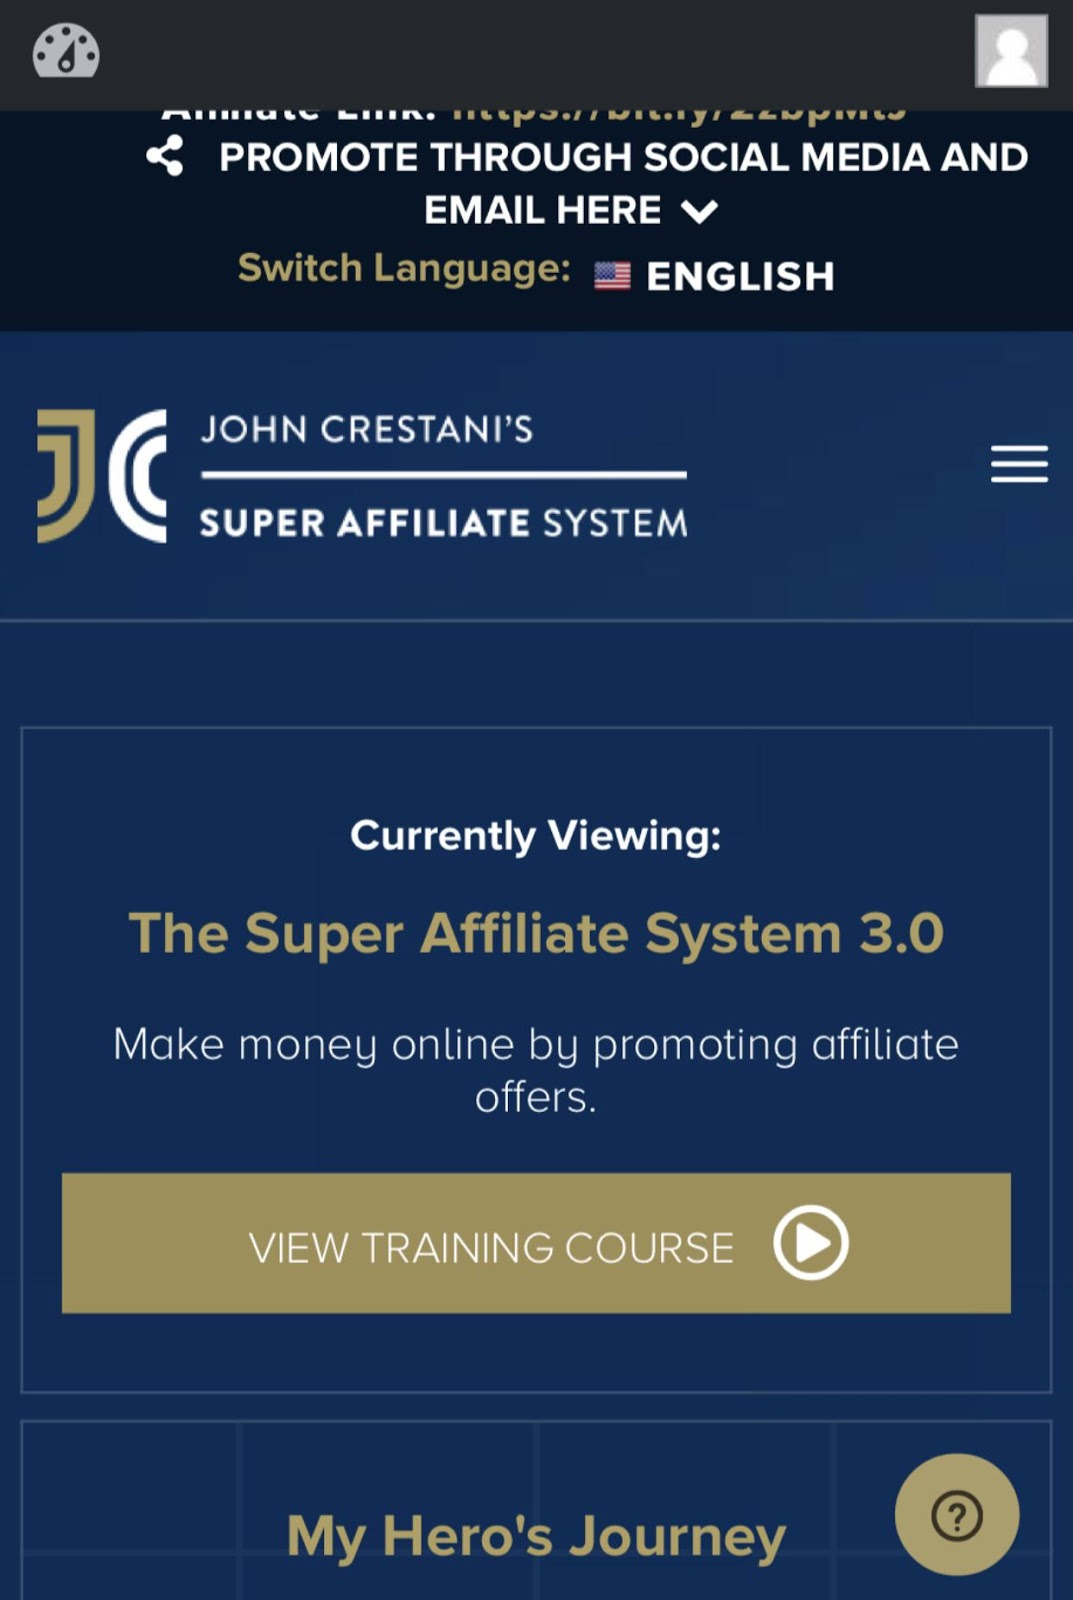 Super Affiliate System Review - John Crestani